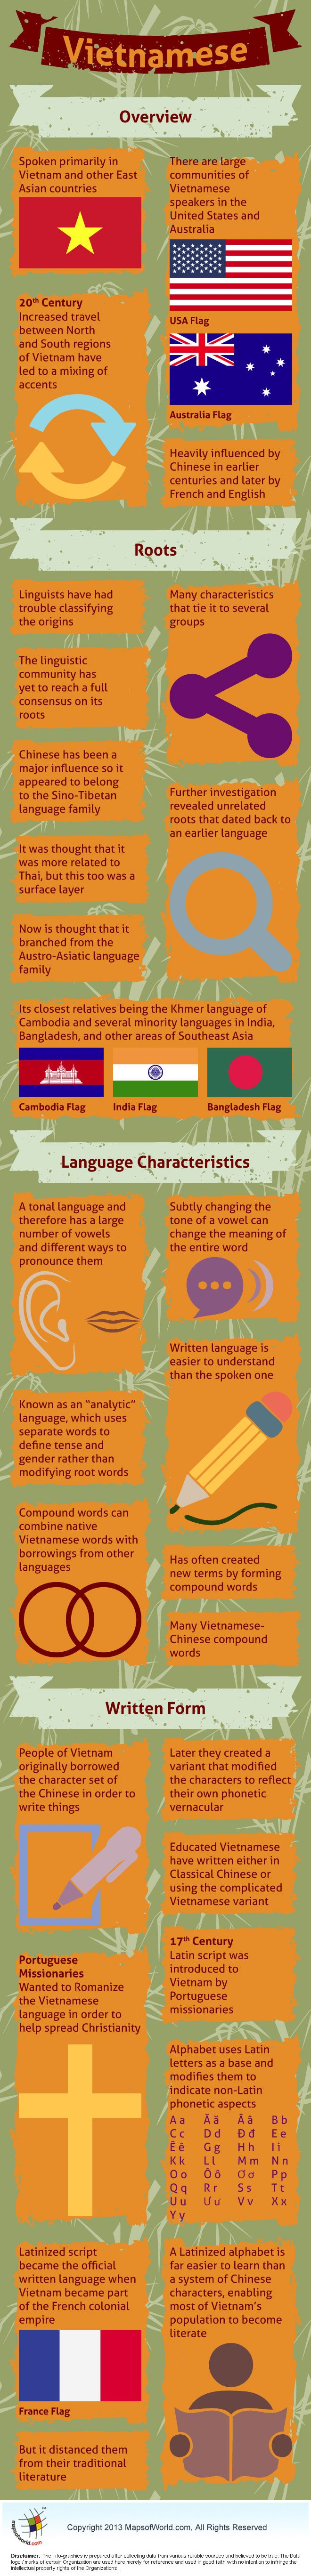 Infographic on Vietnamese Language